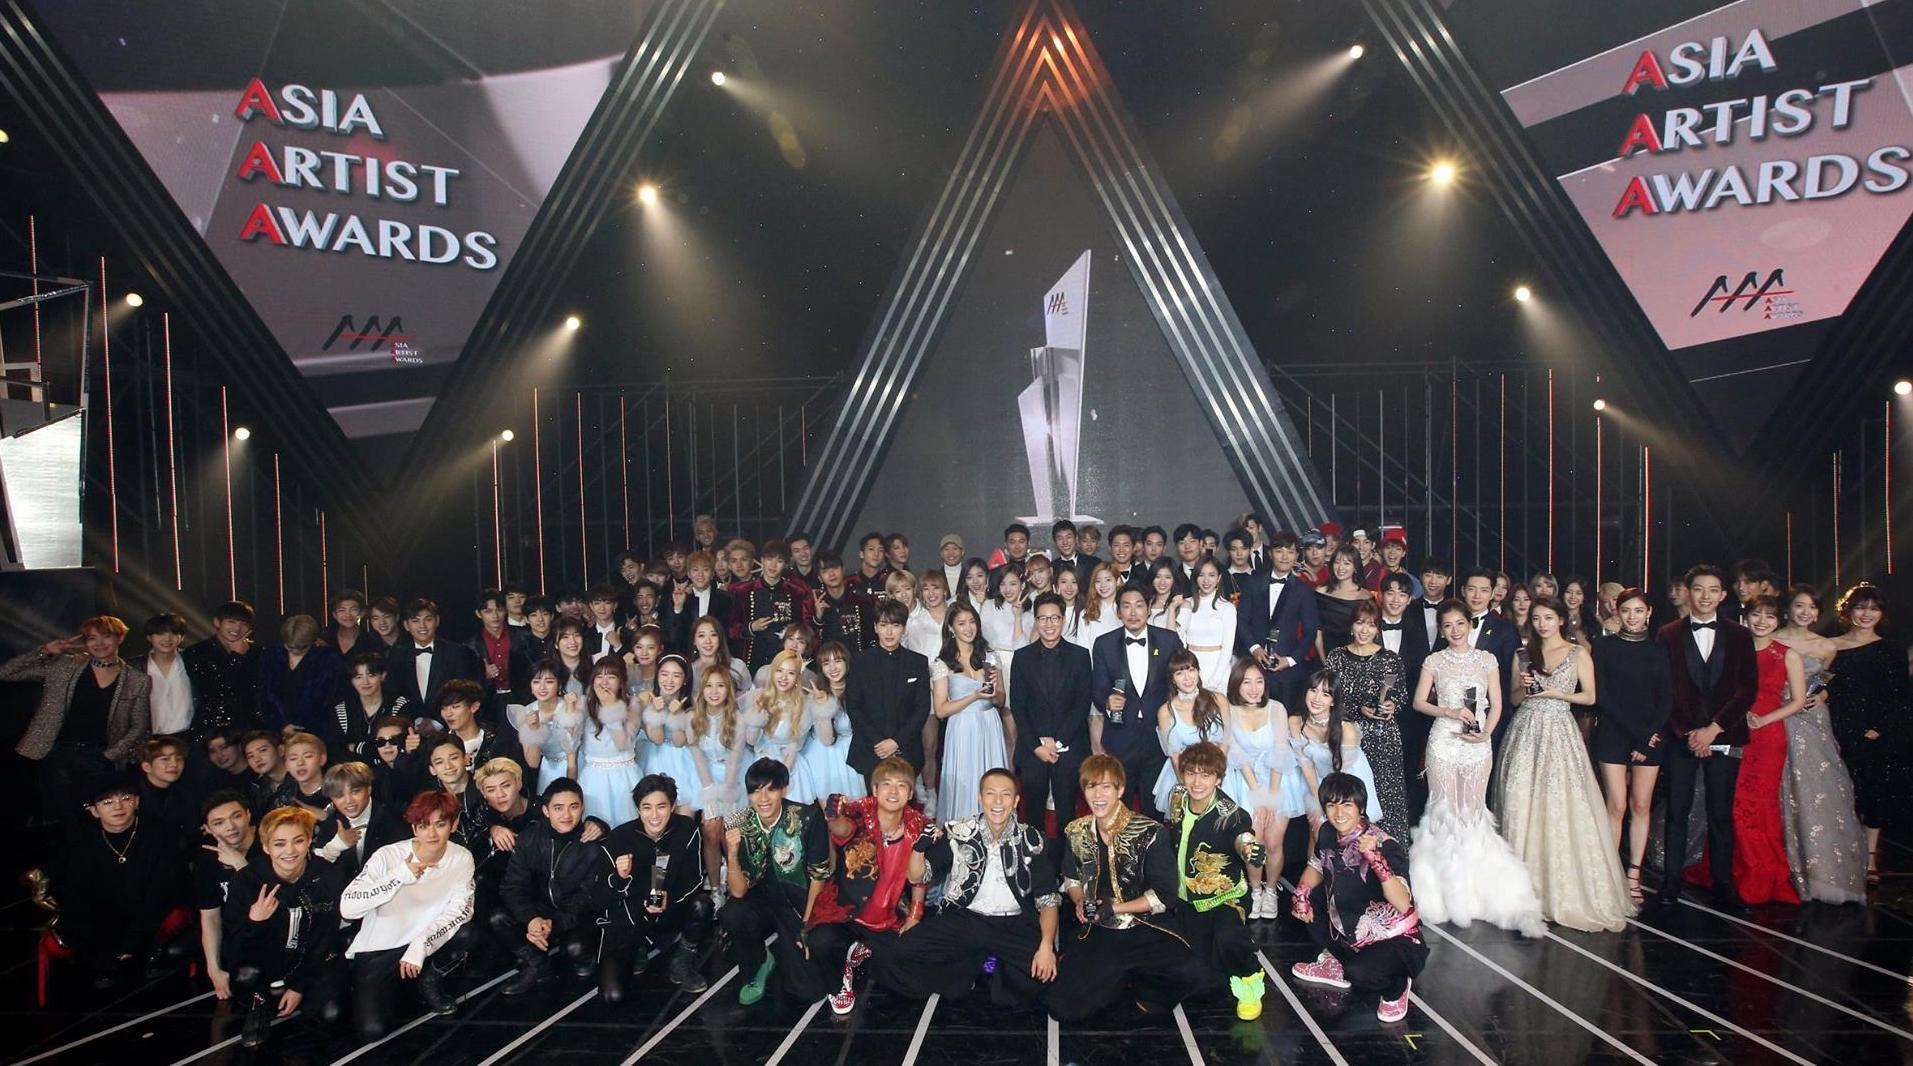 MC And Details Announced For 2017 Asia Artist Awards